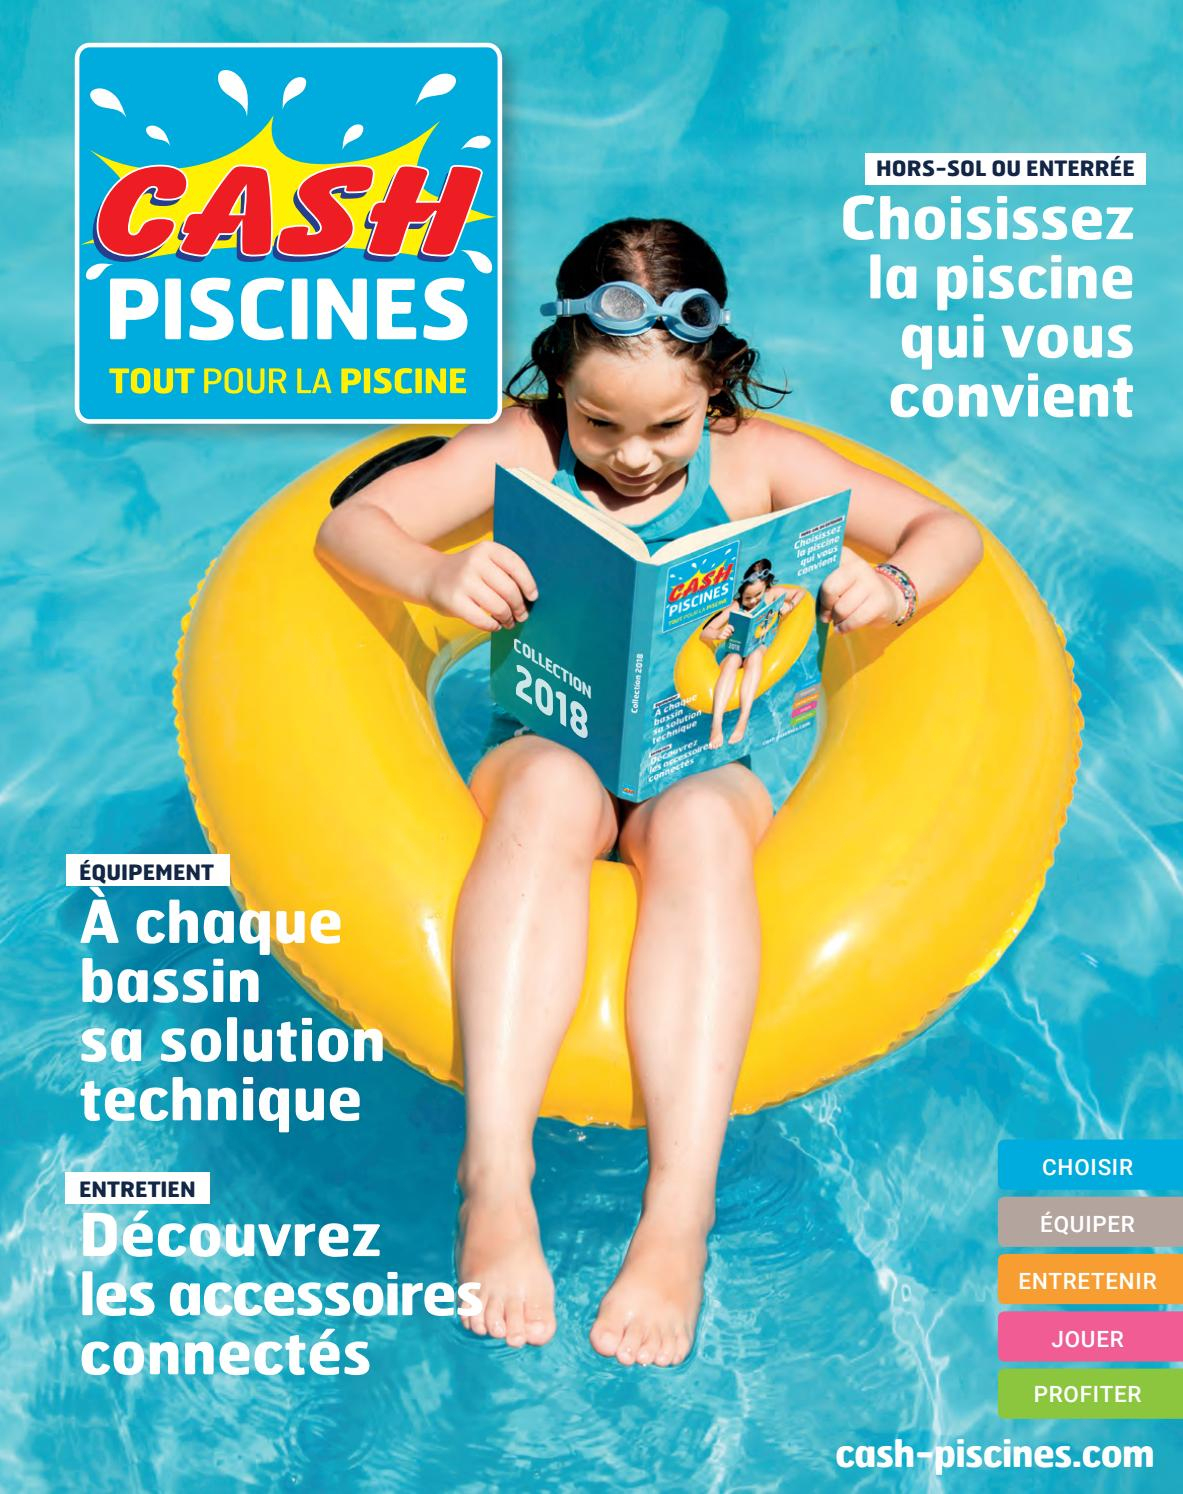 Catalogue Cash Piscine 2018 By Octave Octave - Issuu pour Cash Piscine Catalogue